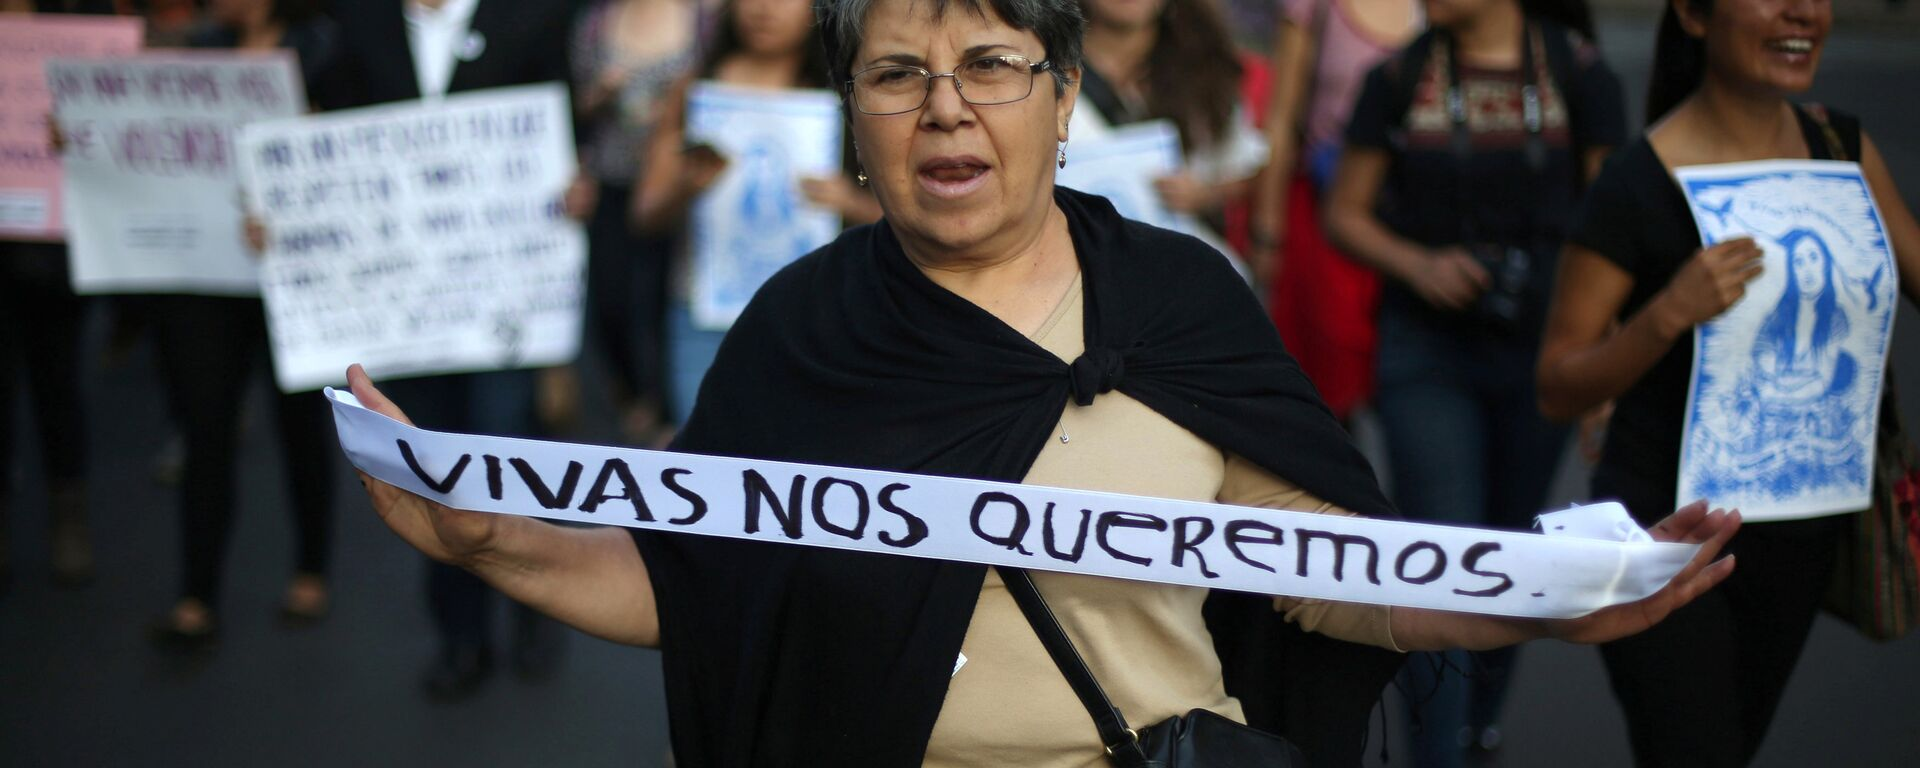 A woman takes part in a march to protest violence against women and the murder of a 16-year-old girl in a coastal town of Argentina last week, at Reforma avenue, in Mexico City, Mexico, October 19, 2016 - Sputnik Mundo, 1920, 03.03.2021